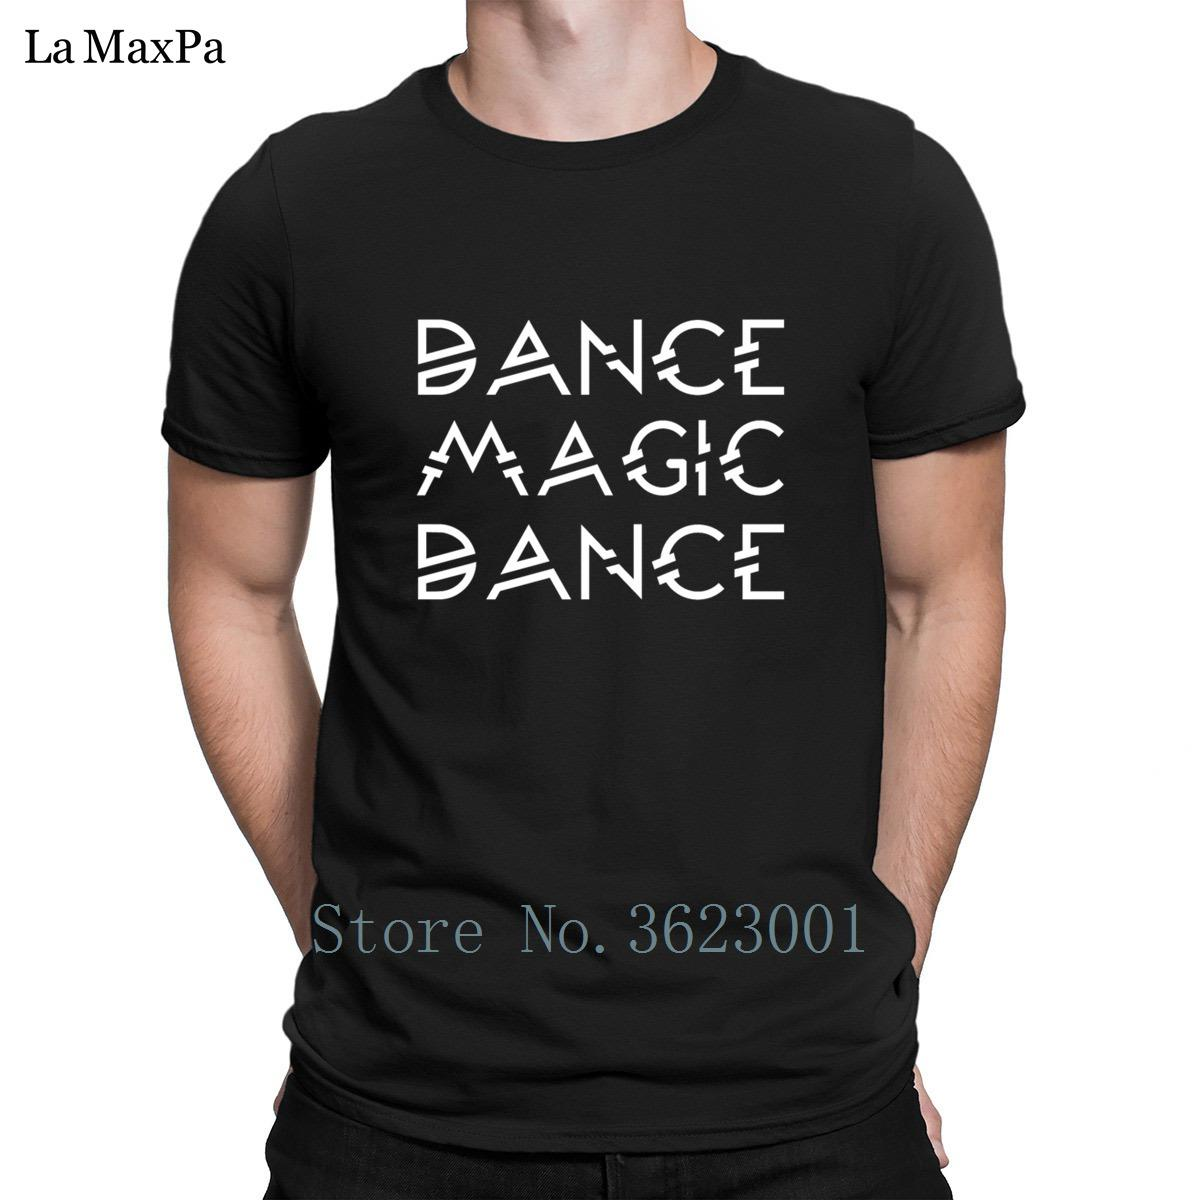 Dance Team Shirts Ideas Bcd Tofu House